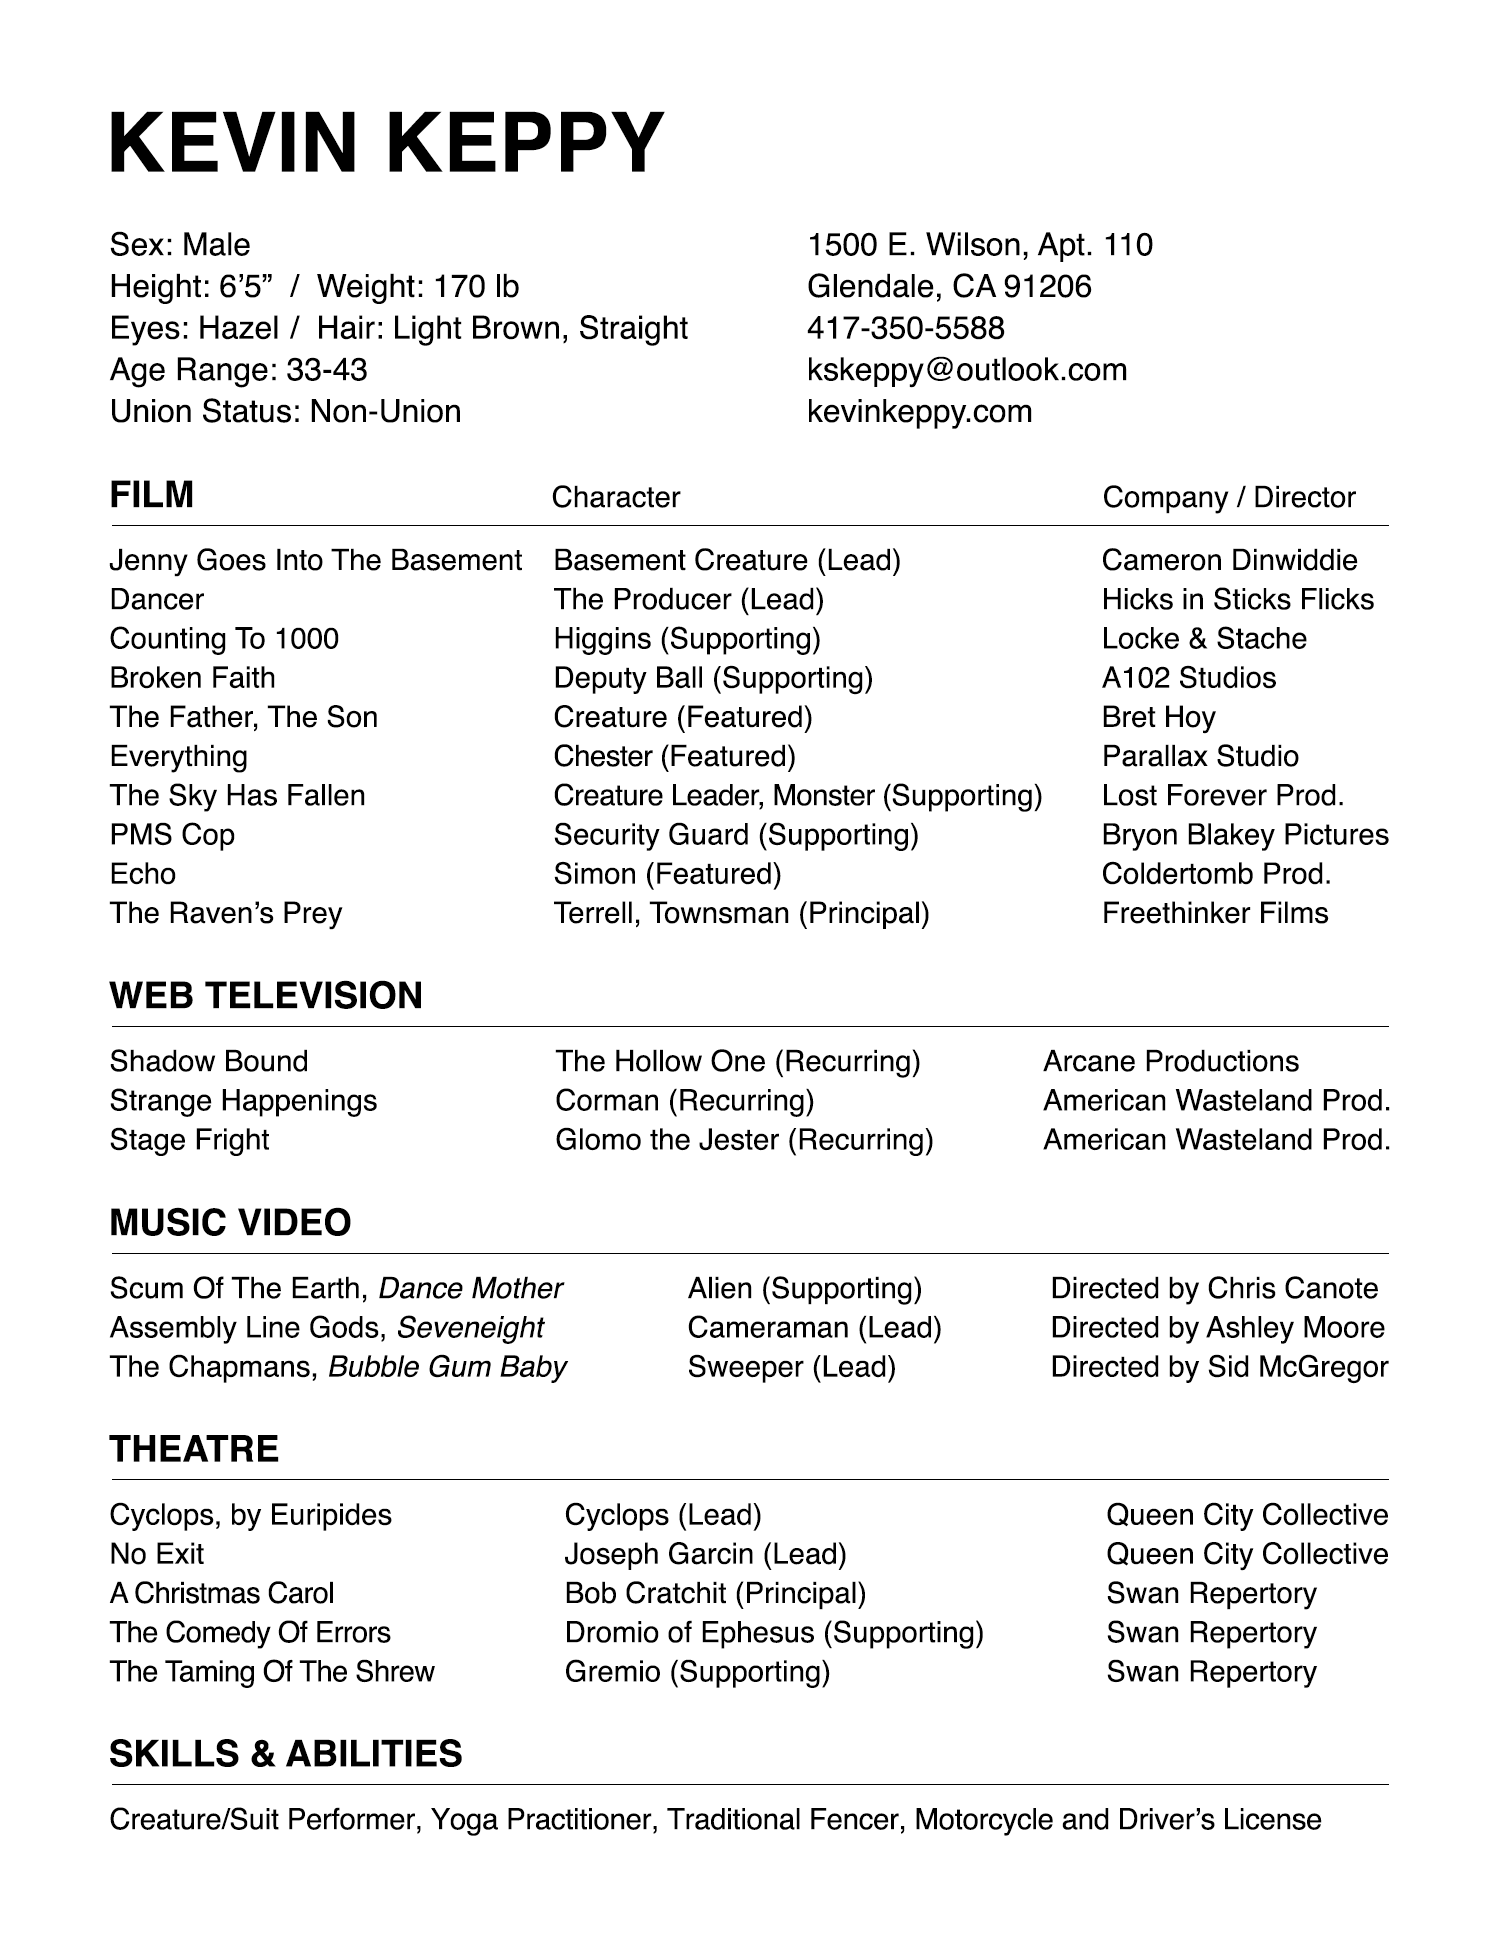 Kevin Keppy Acting Resume